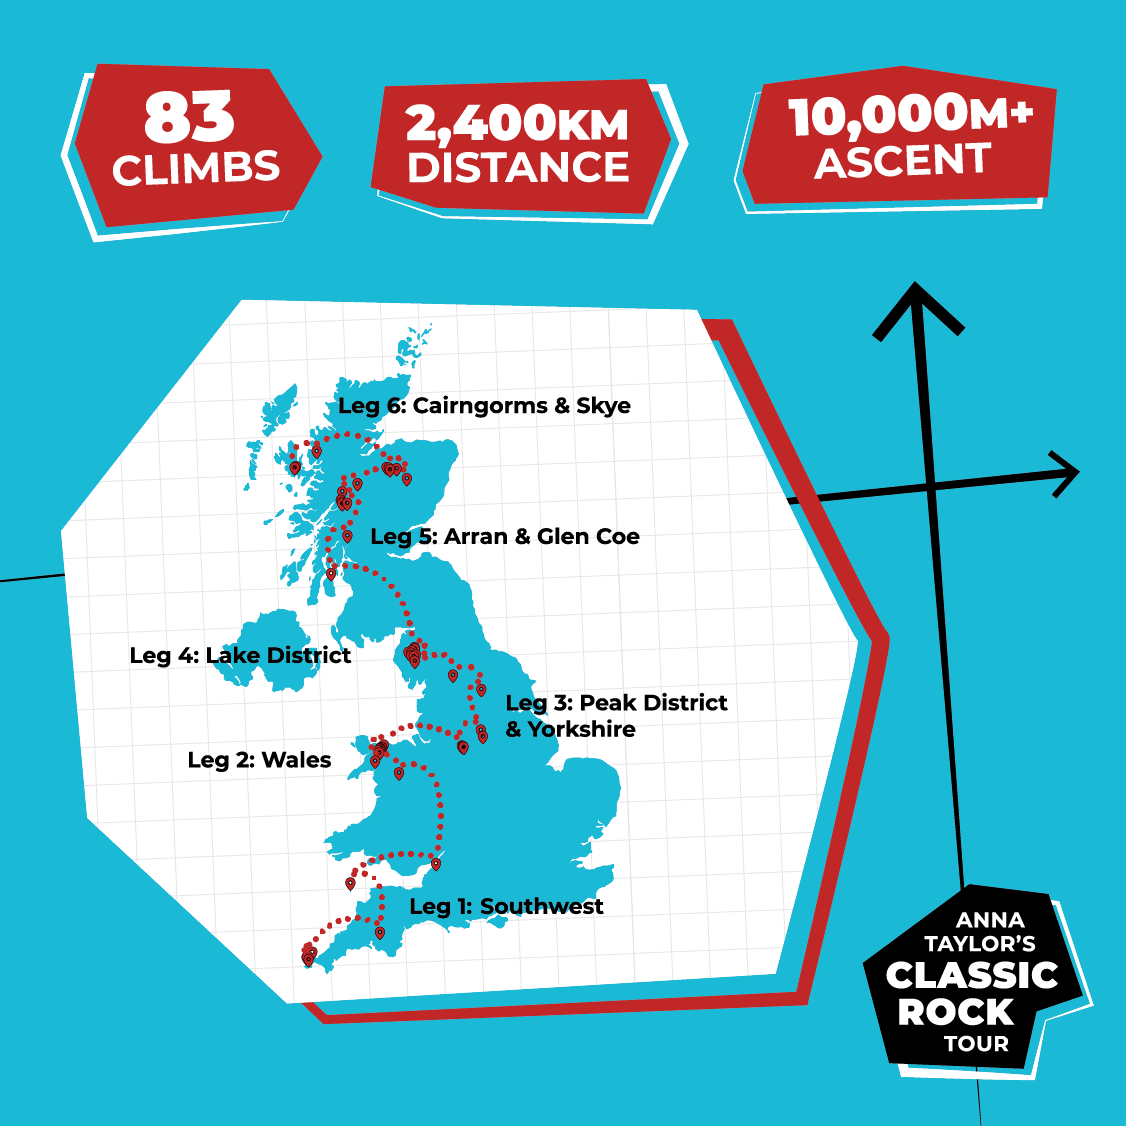 Map of the UK showing each leg of the tour Anna will be stopping at.